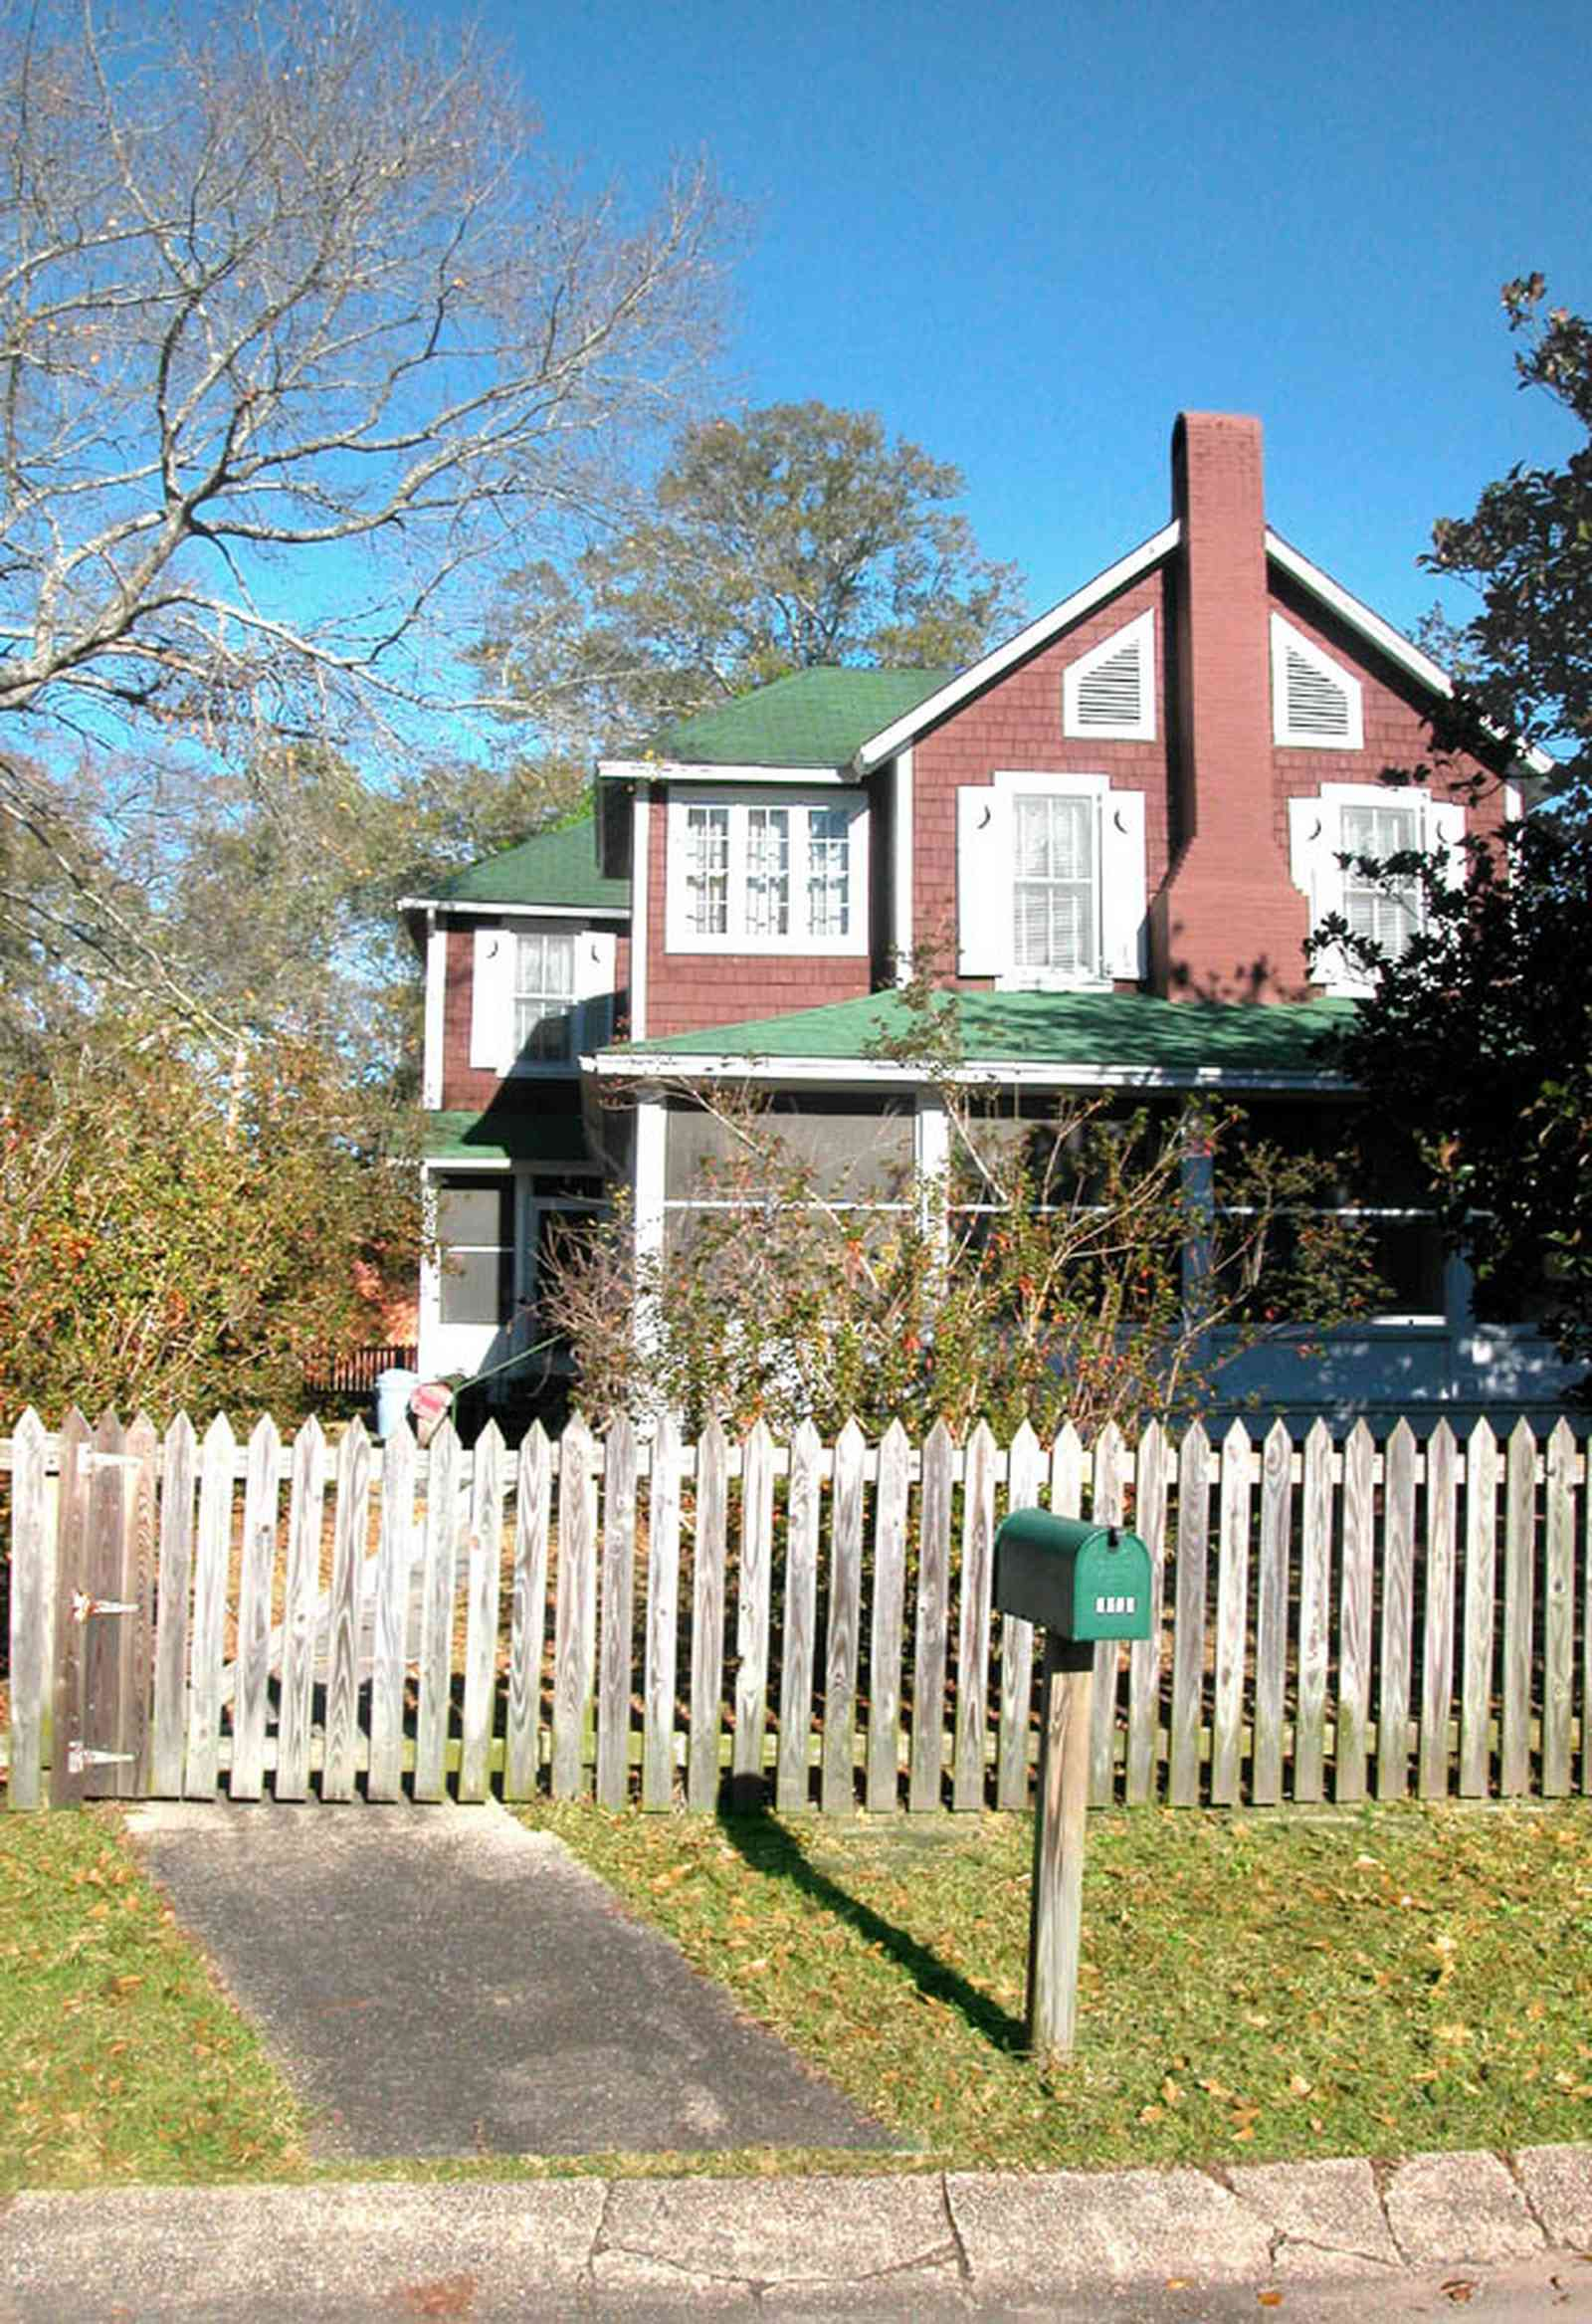 Century:-Historic-District:-Showalter-House_02.jpg:  picket fence, mailbox, sidewalk, gate, green roof, half moon shutters, wood siding, screen porch, pecan tree, historic district, magnolia tree, oak tree, sidewalk